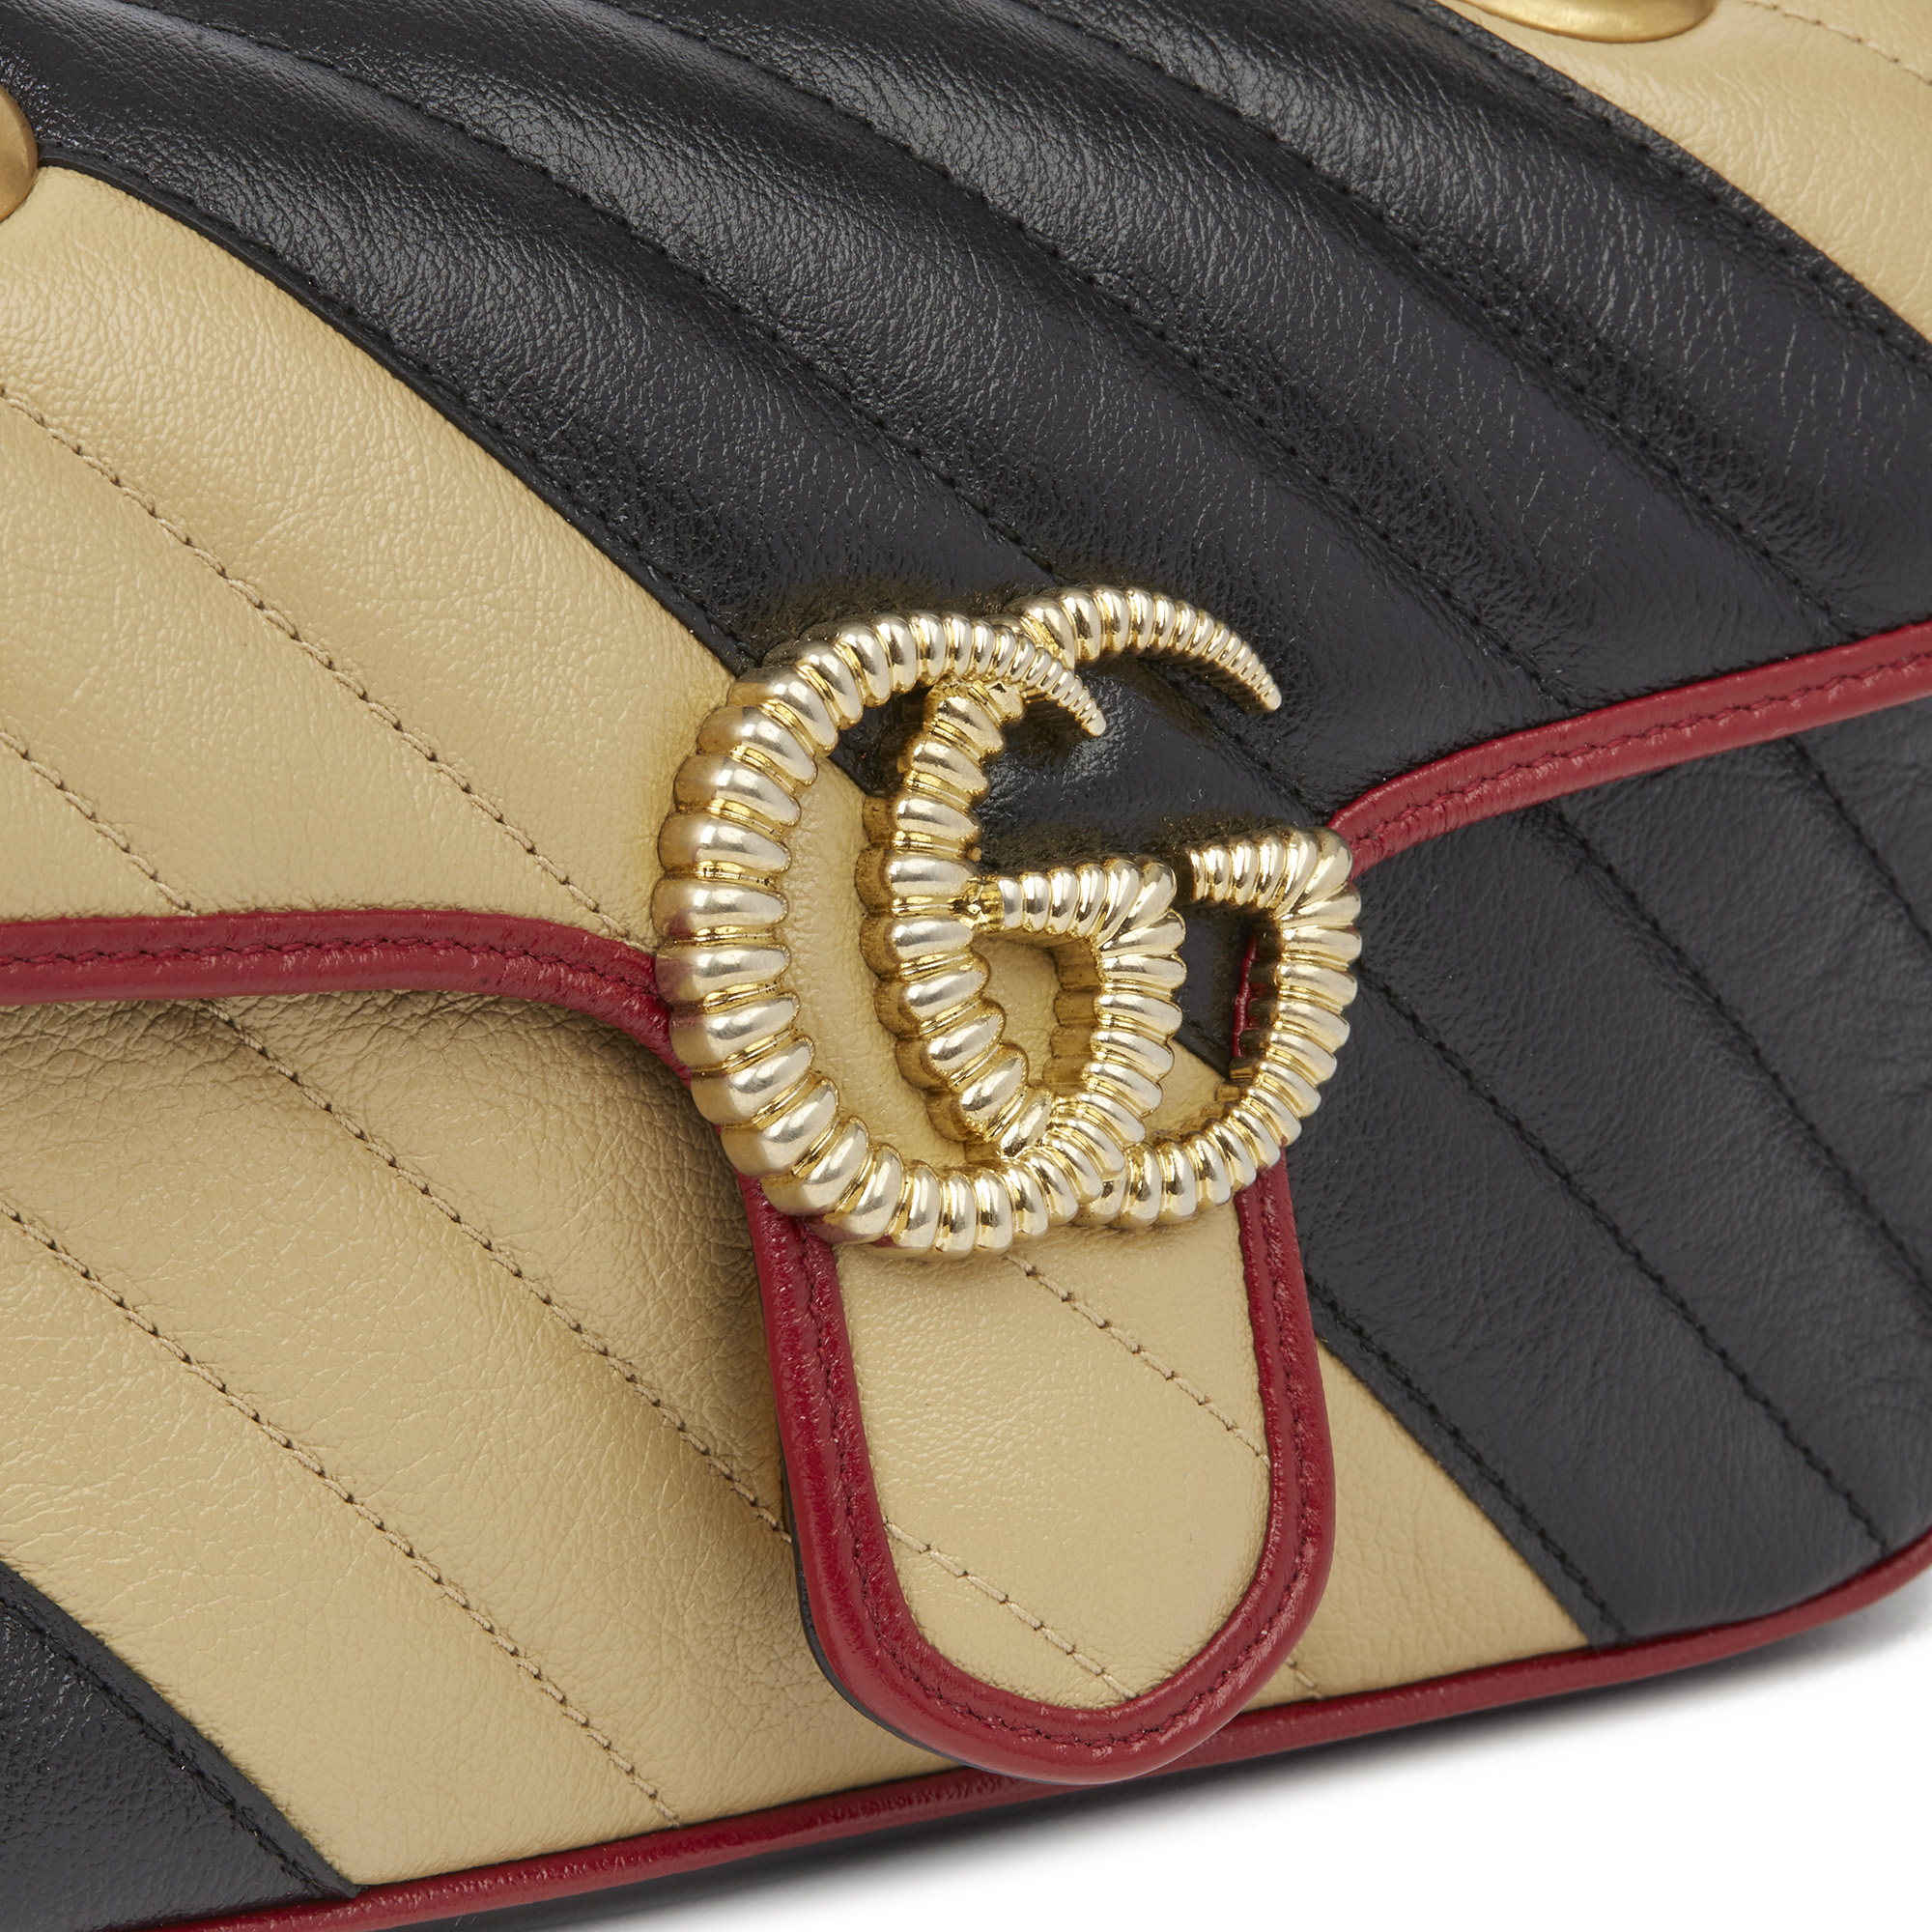 Gucci Black, Cream & Red Diagonal Quilted Aged Calfskin Leather Mini Marmont - Image 8 of 12